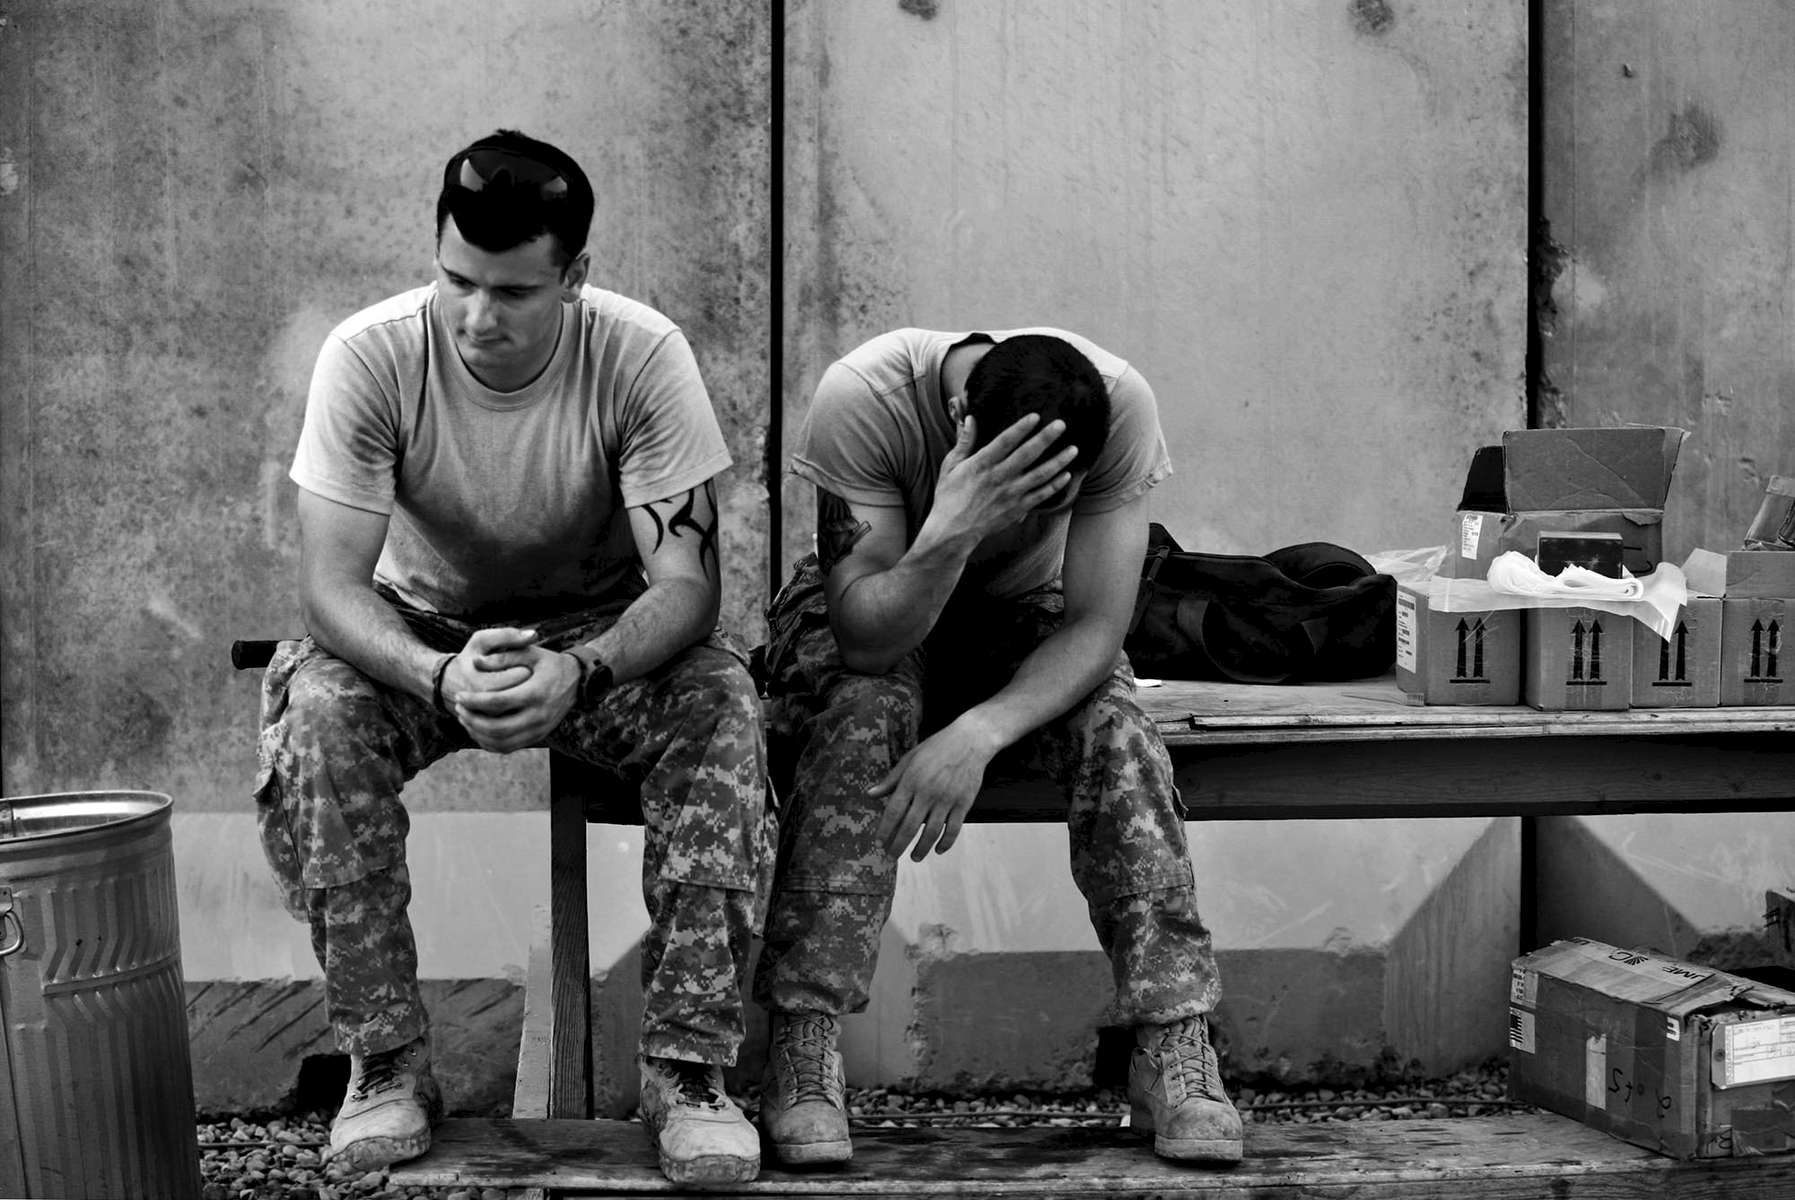 (l-r) Pfc. Christopher Scott, 20, of Dumfries, and Spc. Sam Sivers, 23, of Mt. Sidney, wait for their next assignment while at Camp Adder. As the war winds down, there increasingly is less to do for the troops than before.